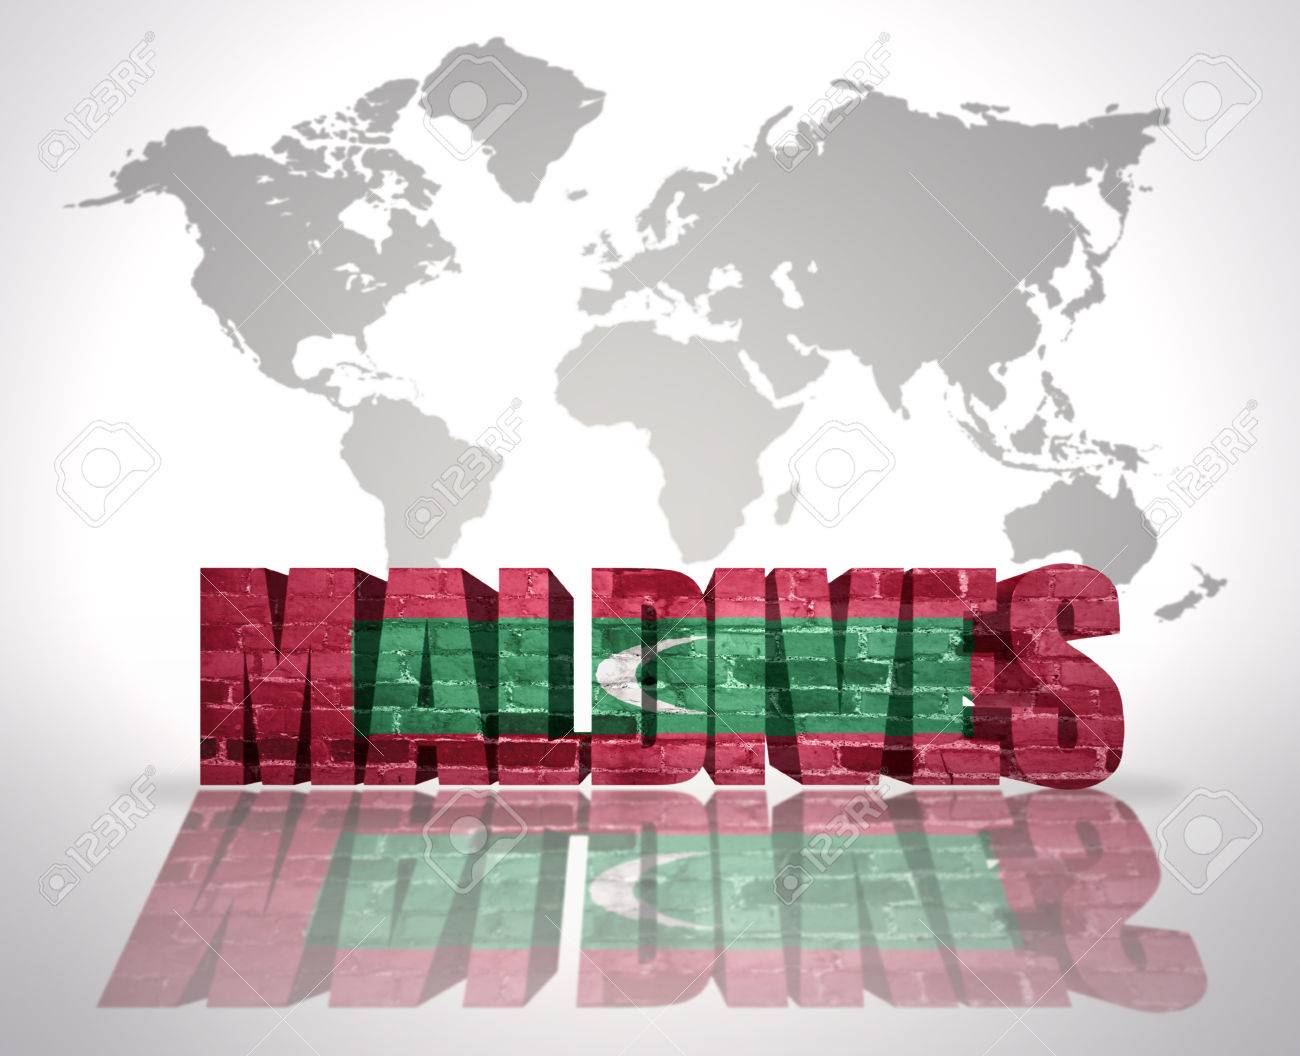 Word Maldives with Maldivian Flag on a world map background on indonesia world map, mauritania world map, dubai world map, burkina faso world map, china world map, costa rica world map, greece world map, tahiti world map, timor-leste world map, cook islands world map, east timor world map, barbados world map, taiwan world map, fiji world map, malawi world map, myanmar world map, new zealand world map, bora bora world map, algeria world map, hong kong world map,